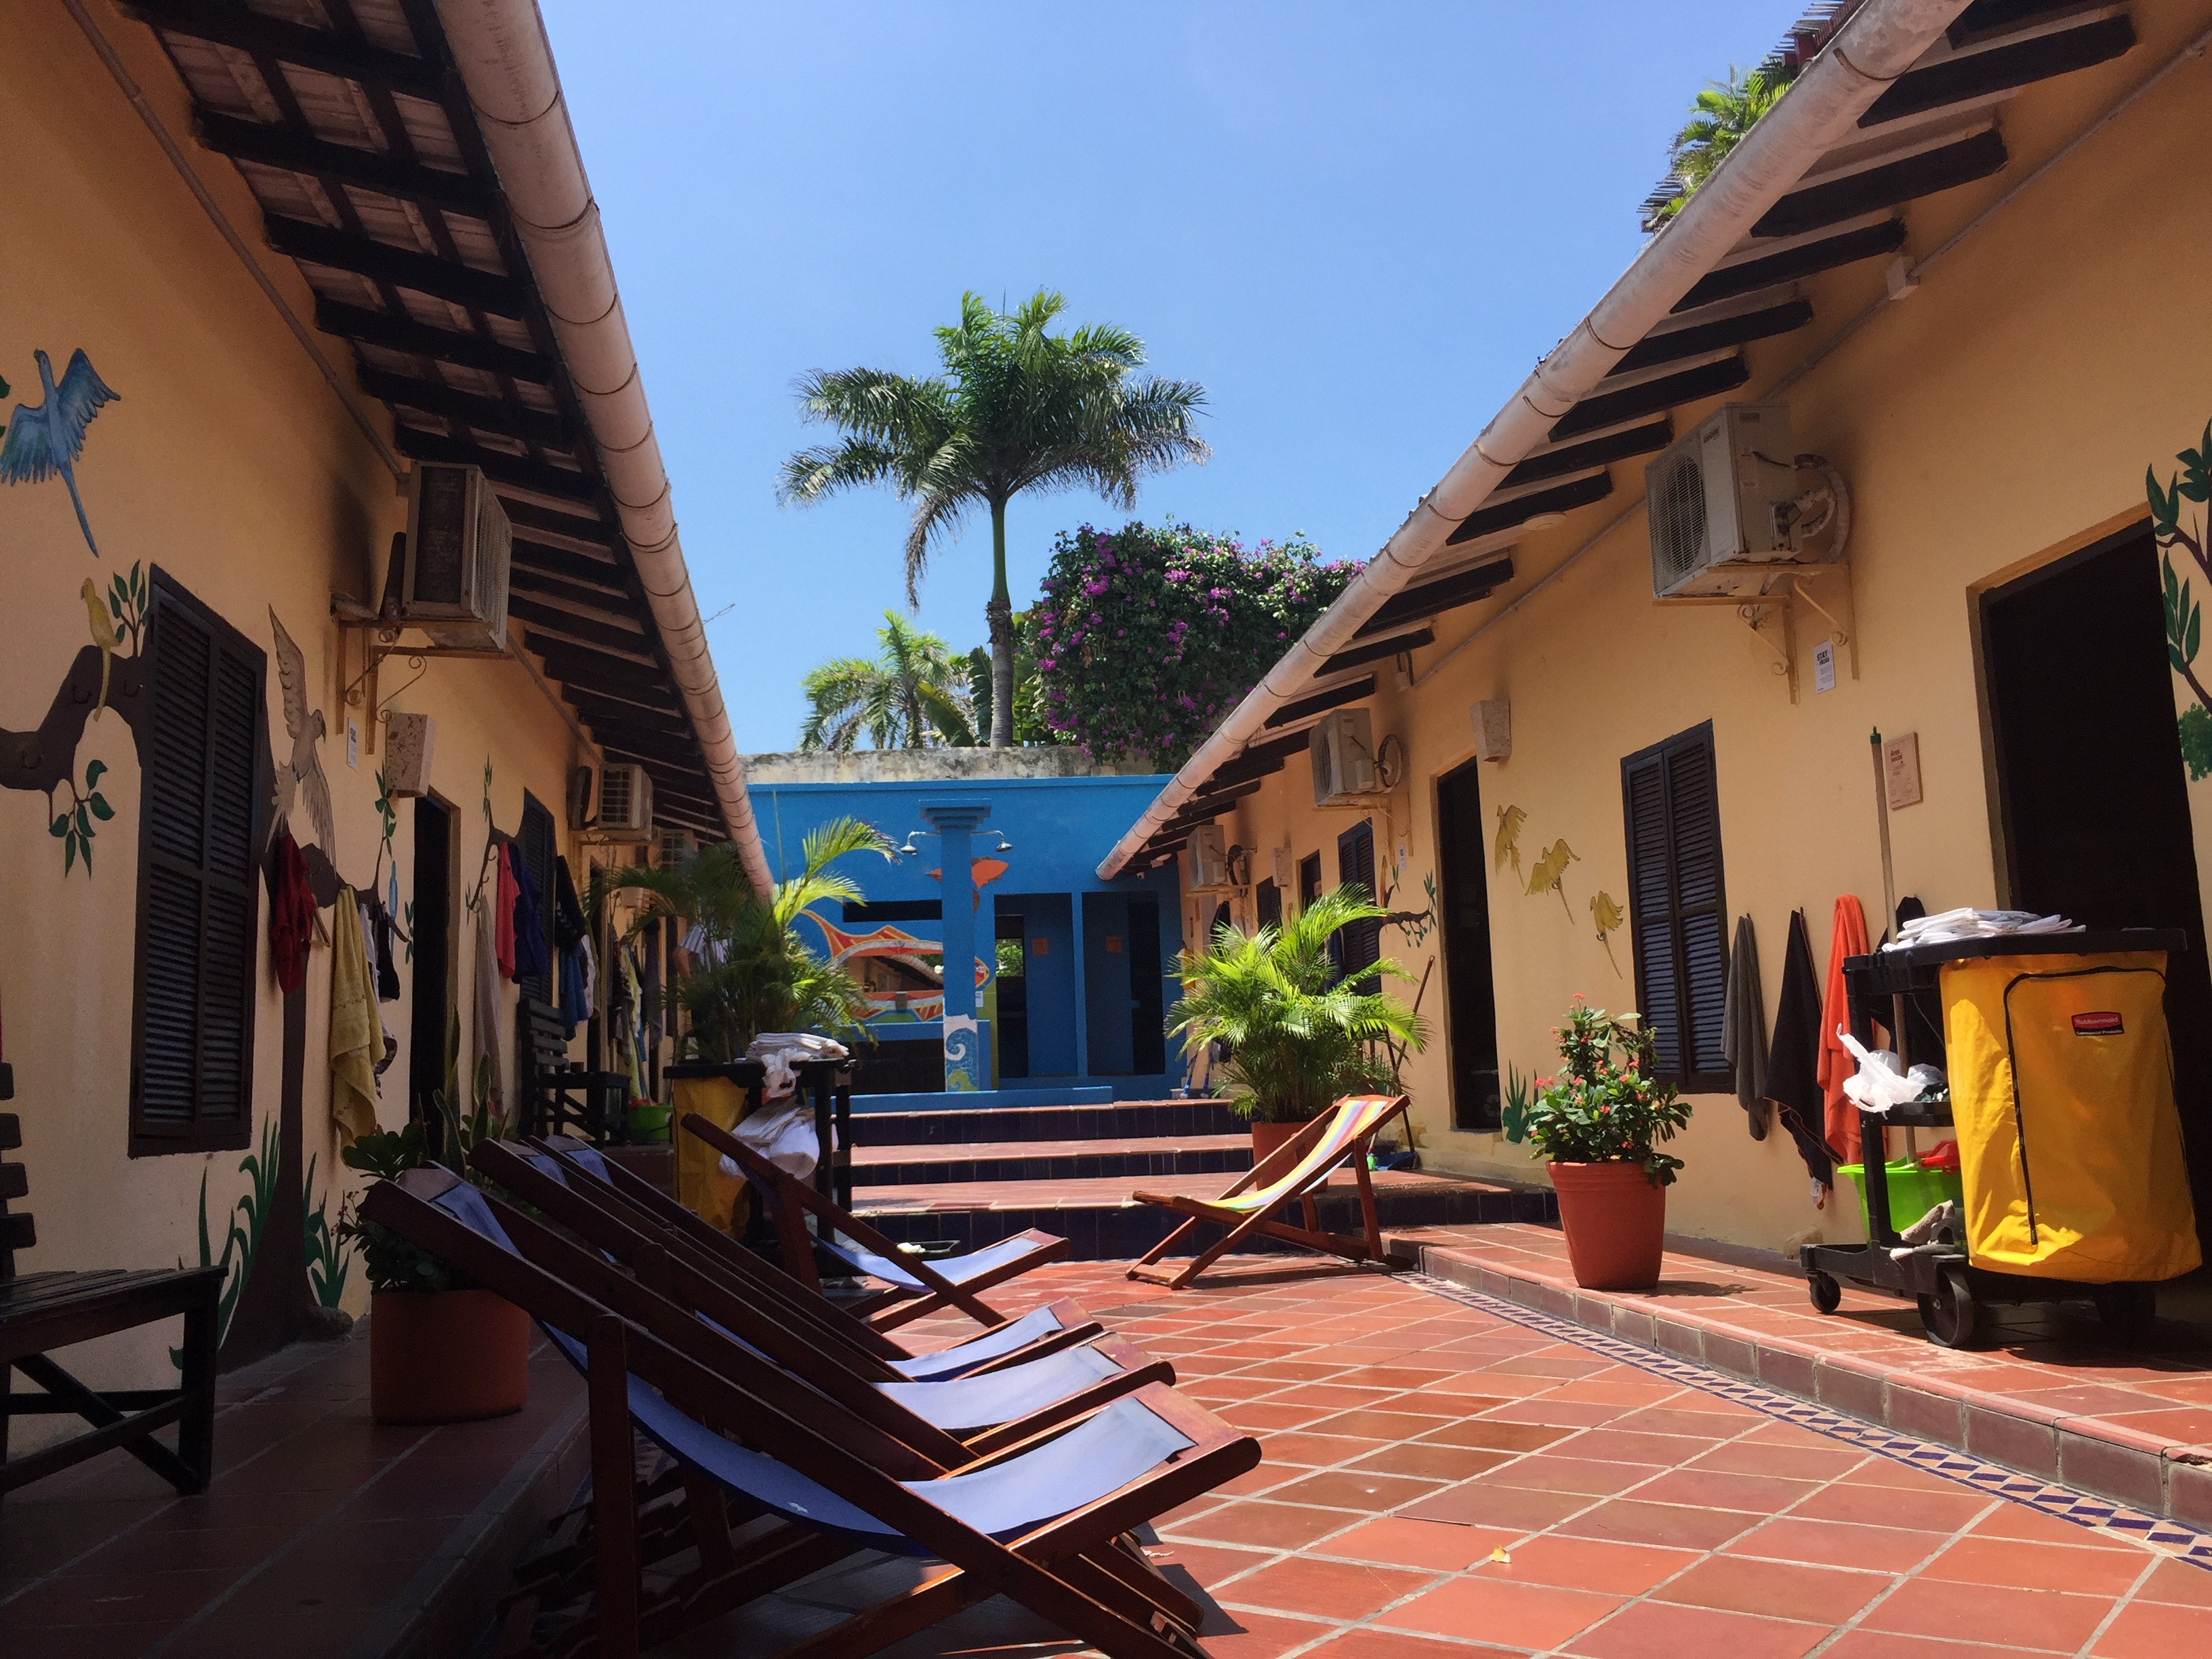 11 Awesome Hostels to stay at in Colombia - South America